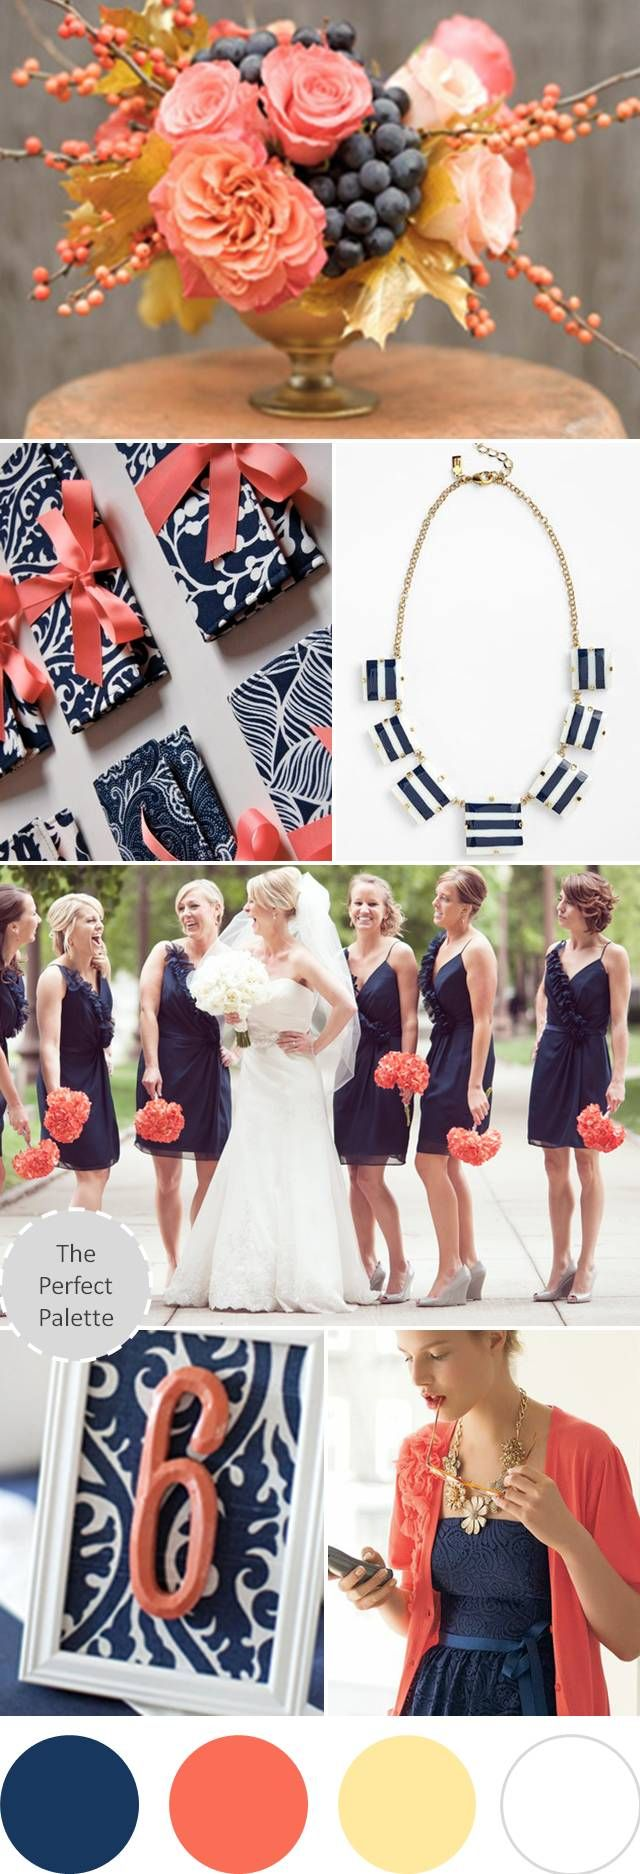 The Perfect Palette: {Wedding Colors I love}: Navy Blue, Coral + Antique Gold!